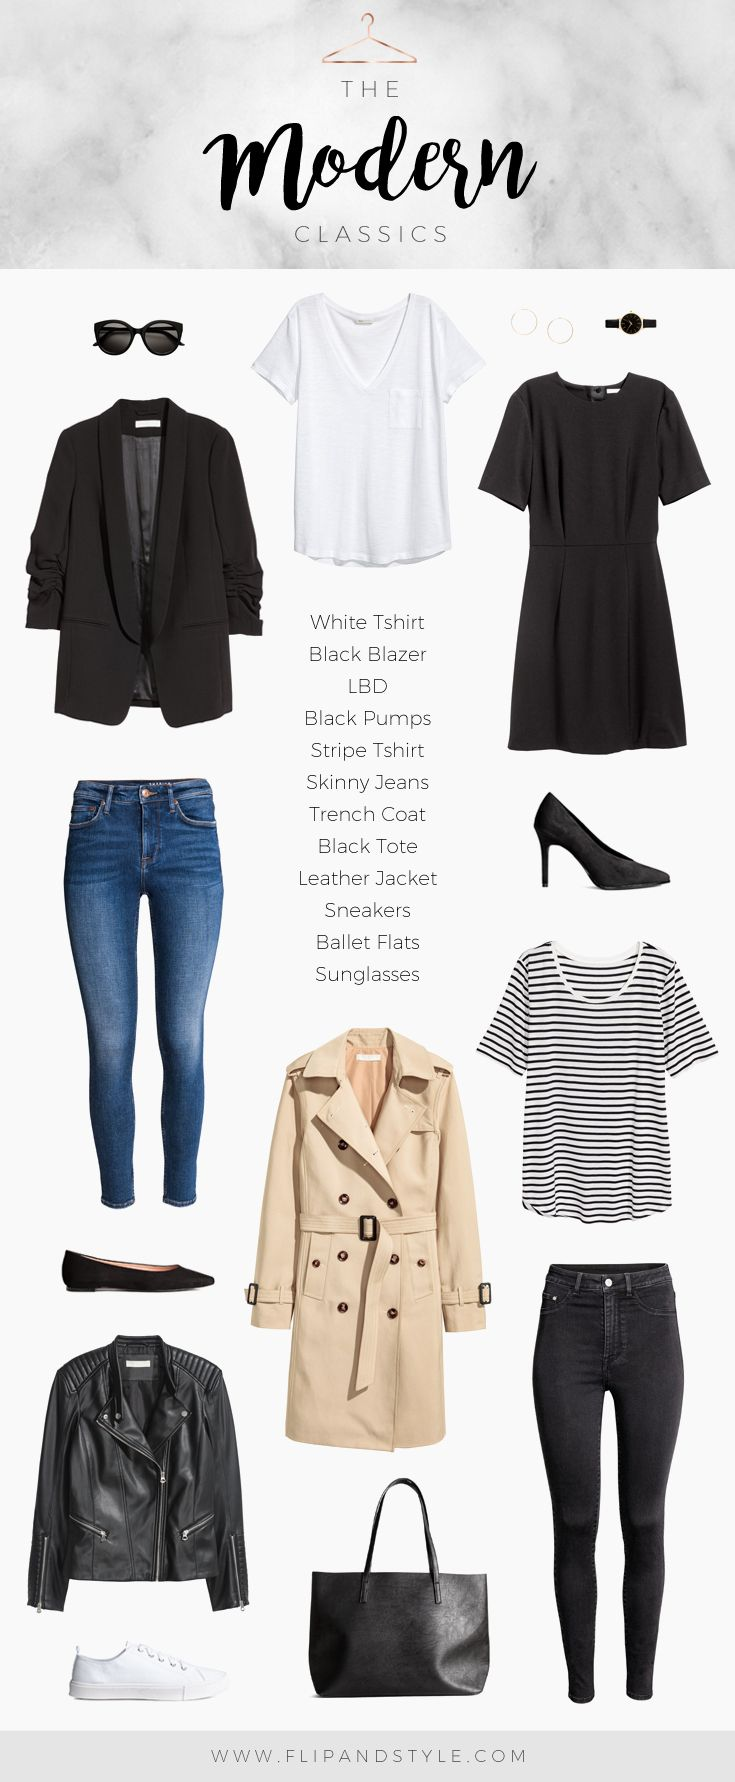 Modern classics for a capsule wardrobe | Style essentials & minimalist outfits, all pieces from H&M | Created by Vanessa at www.flipandstyle.com